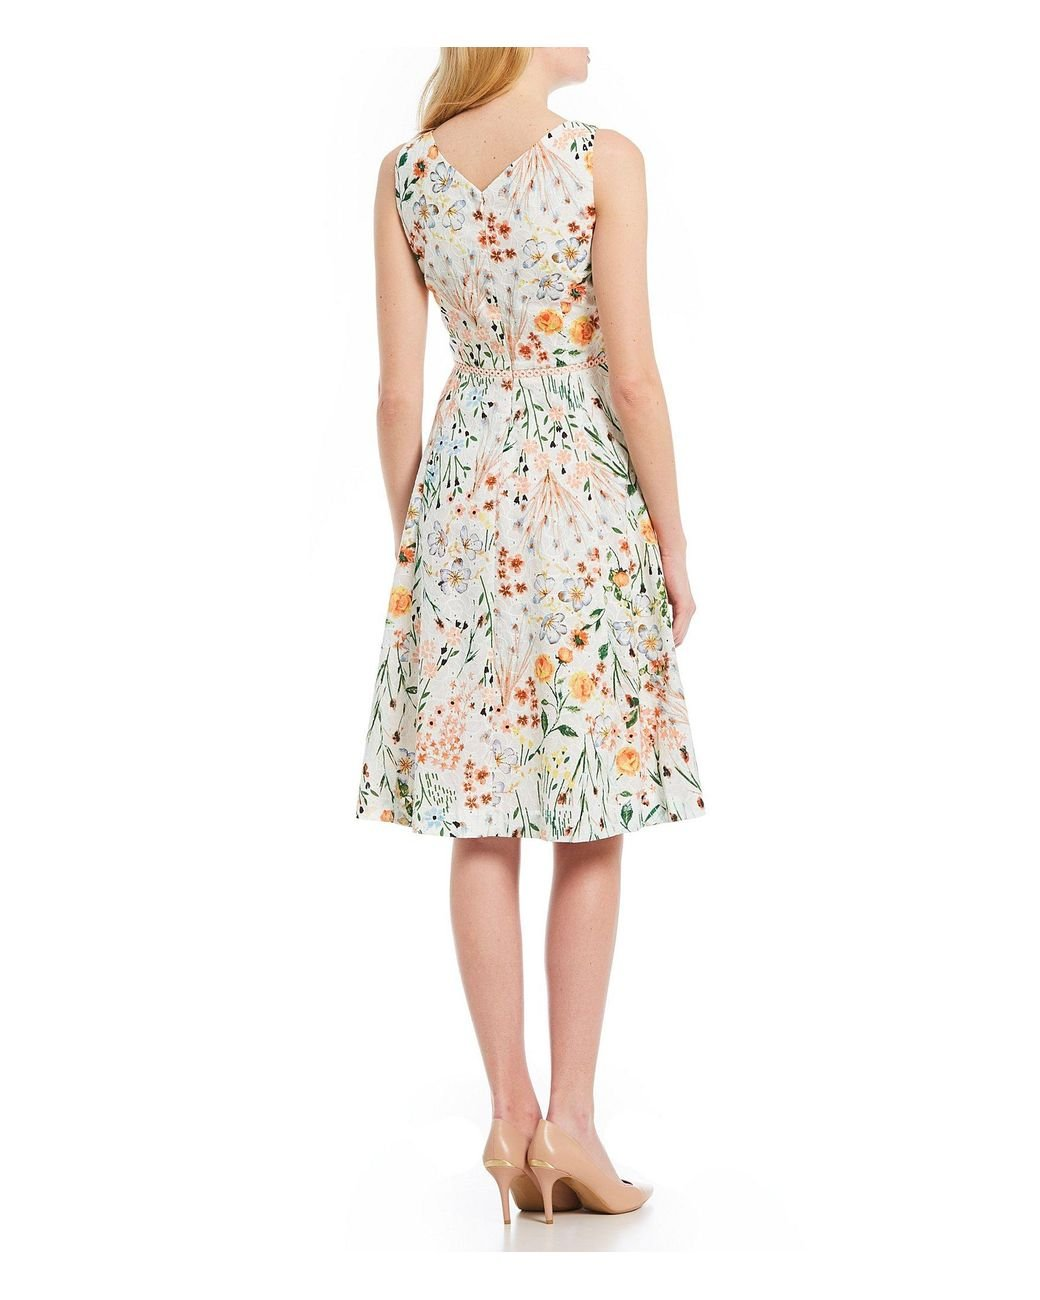 b29a6bafbbf Calvin Klein Floral Lace A-line Dress - Save 36% - Lyst